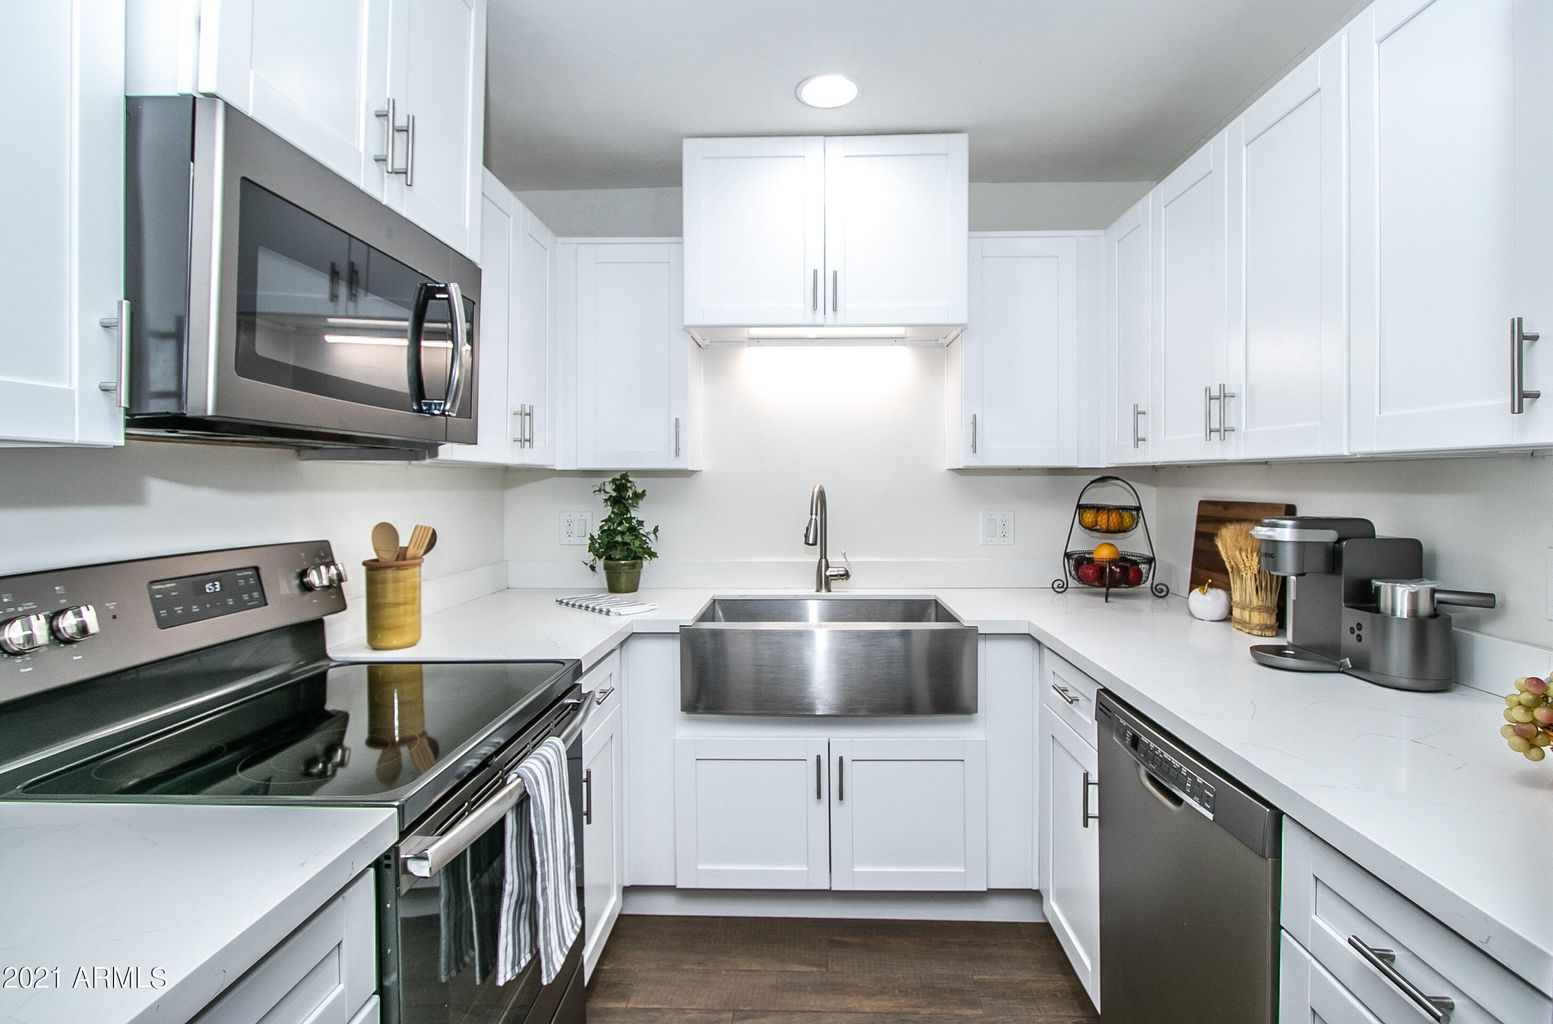 Gorgeous NEW Kitchen: Updated kitchen! Everything's NEW: Stainless Steel appliances, Quartz counters, soft-close cabinets, More